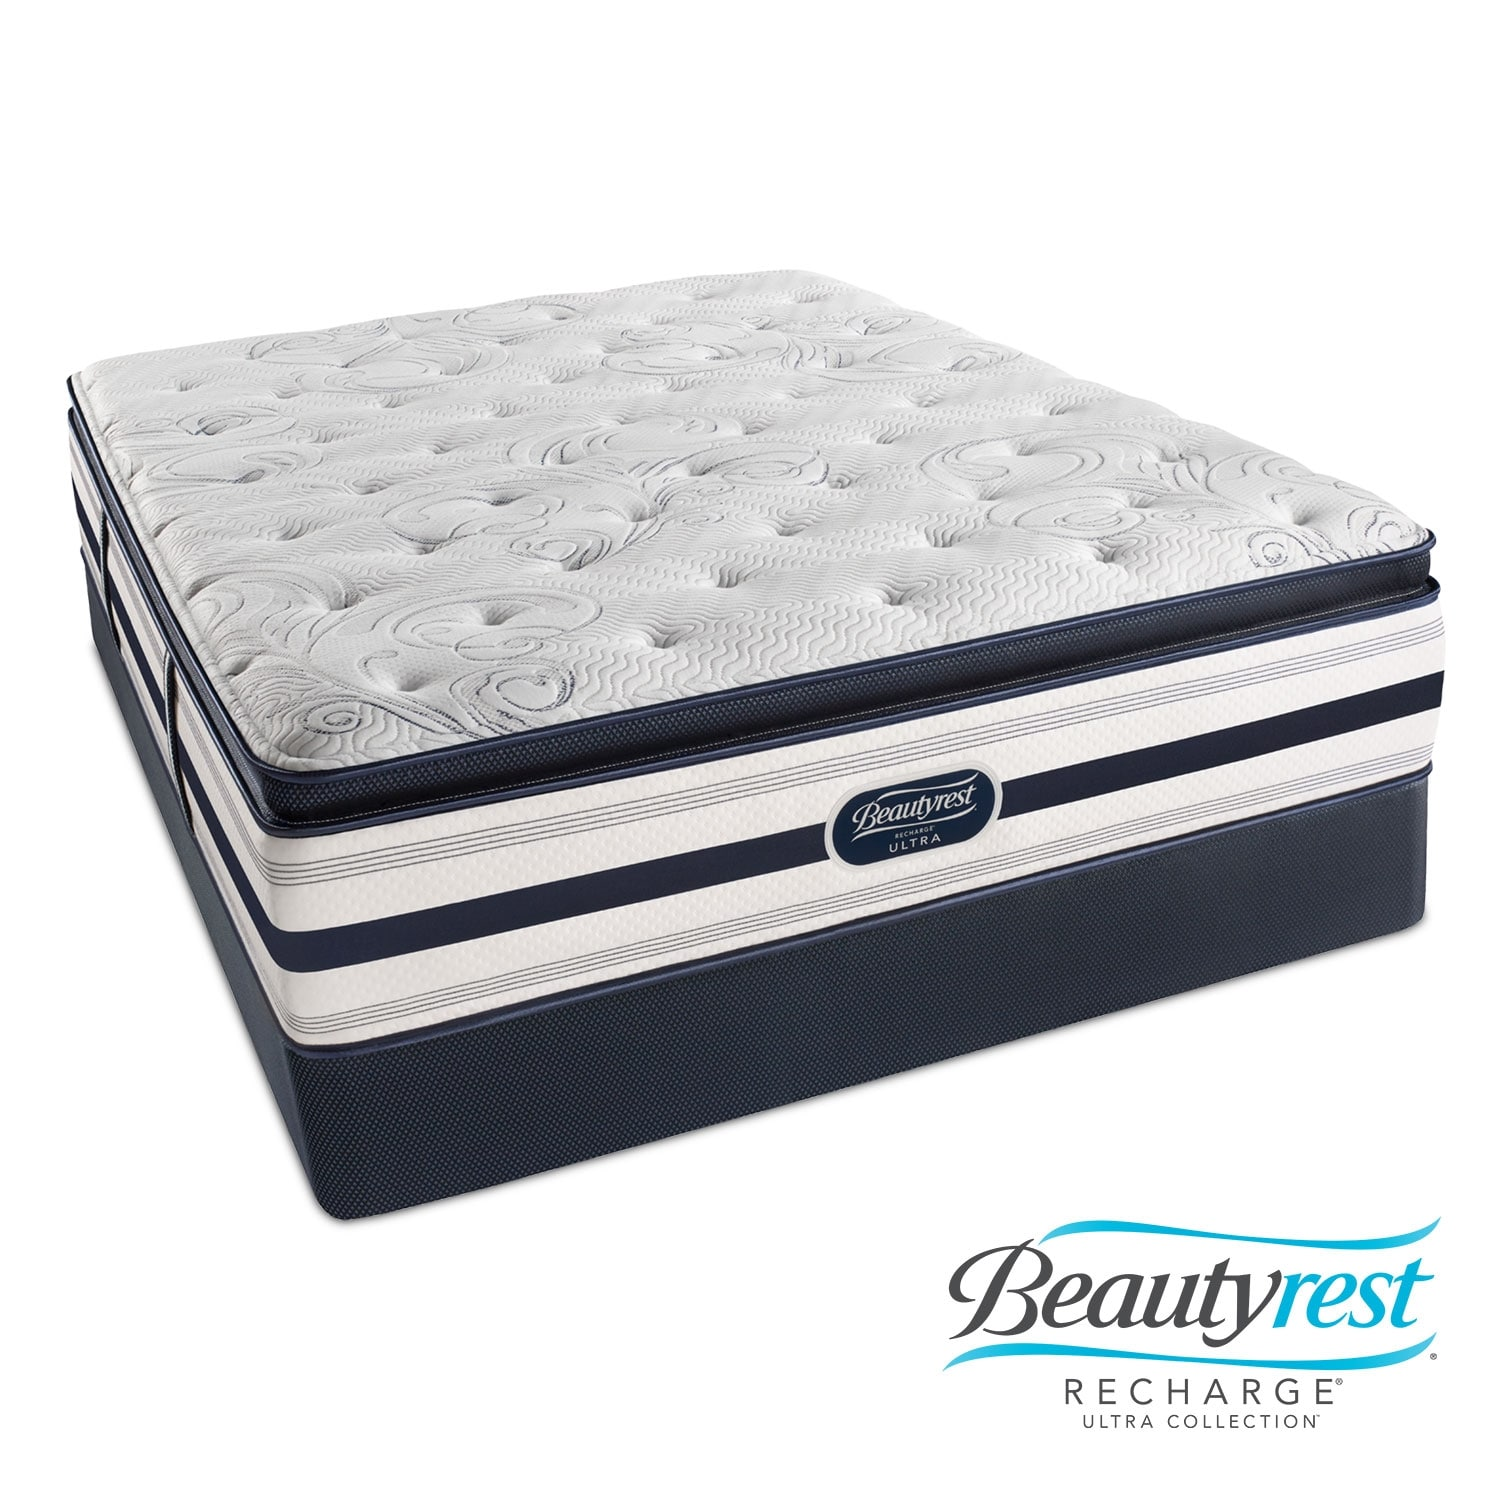 Mattresses and Bedding - Cerise Luxury Firm PT Twin Mattress/Foundation Set